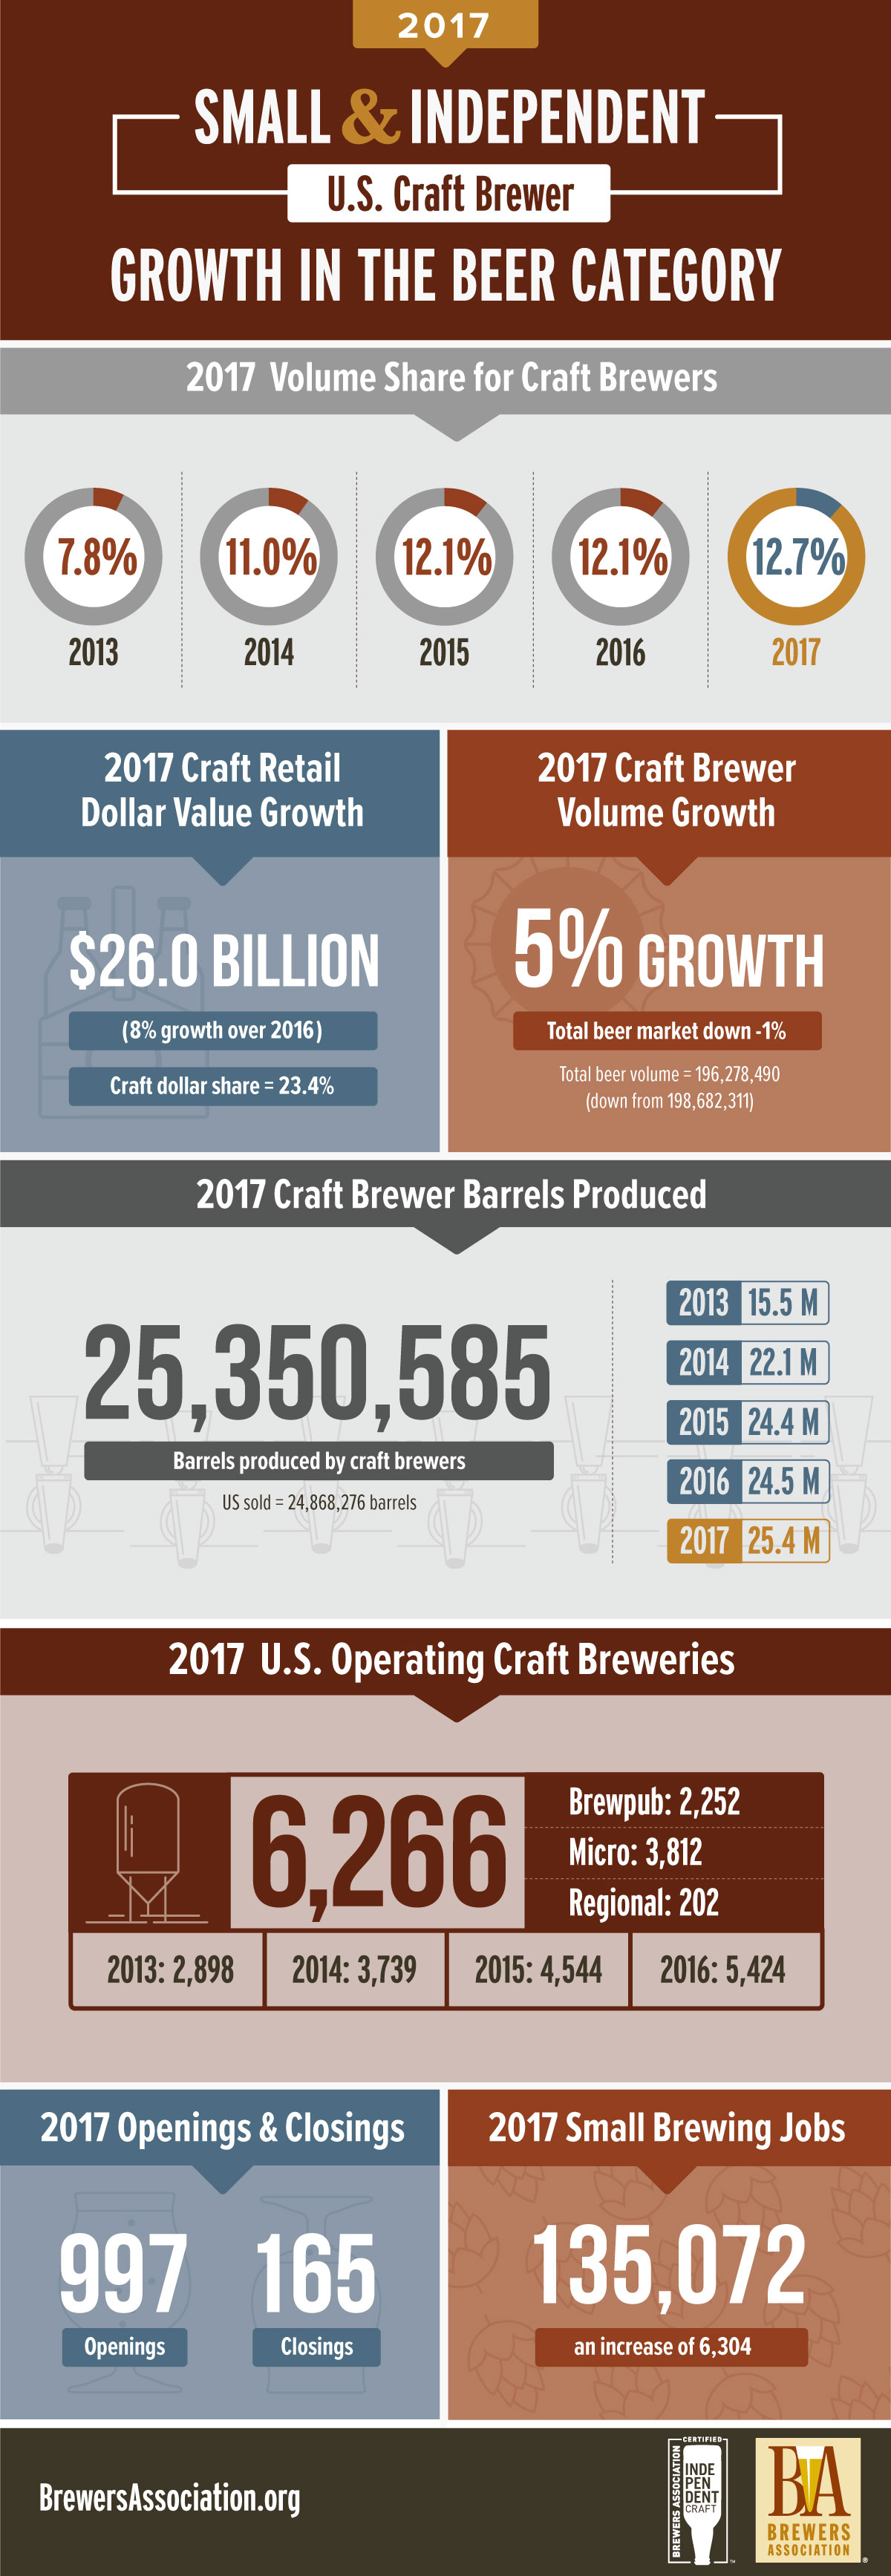 Graphic courtesy Brewers Association